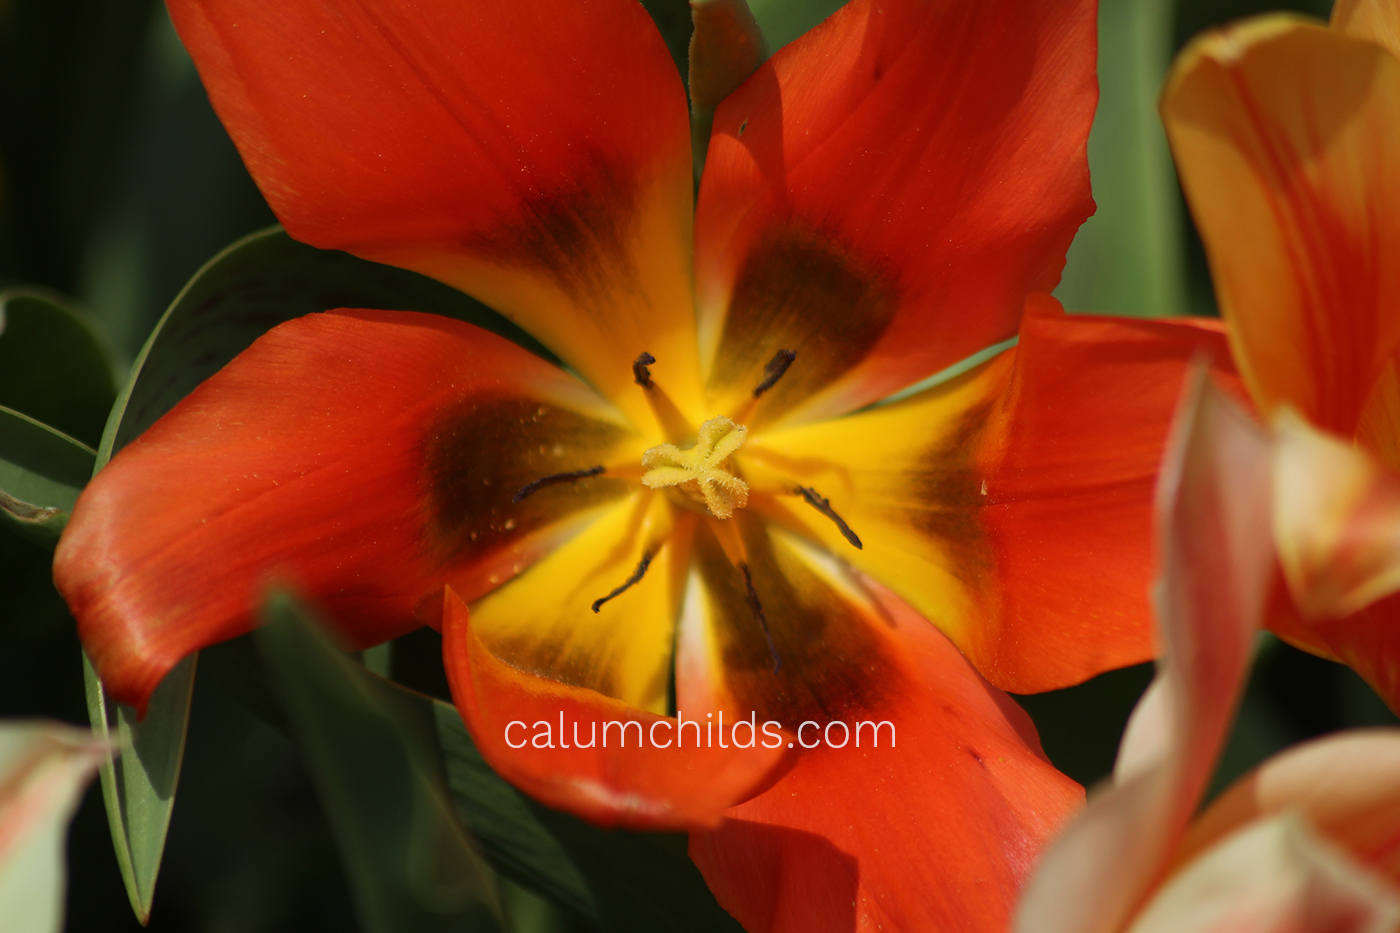 A tulip opens up it's stamen, exposing the black and yellow ends of the petals.